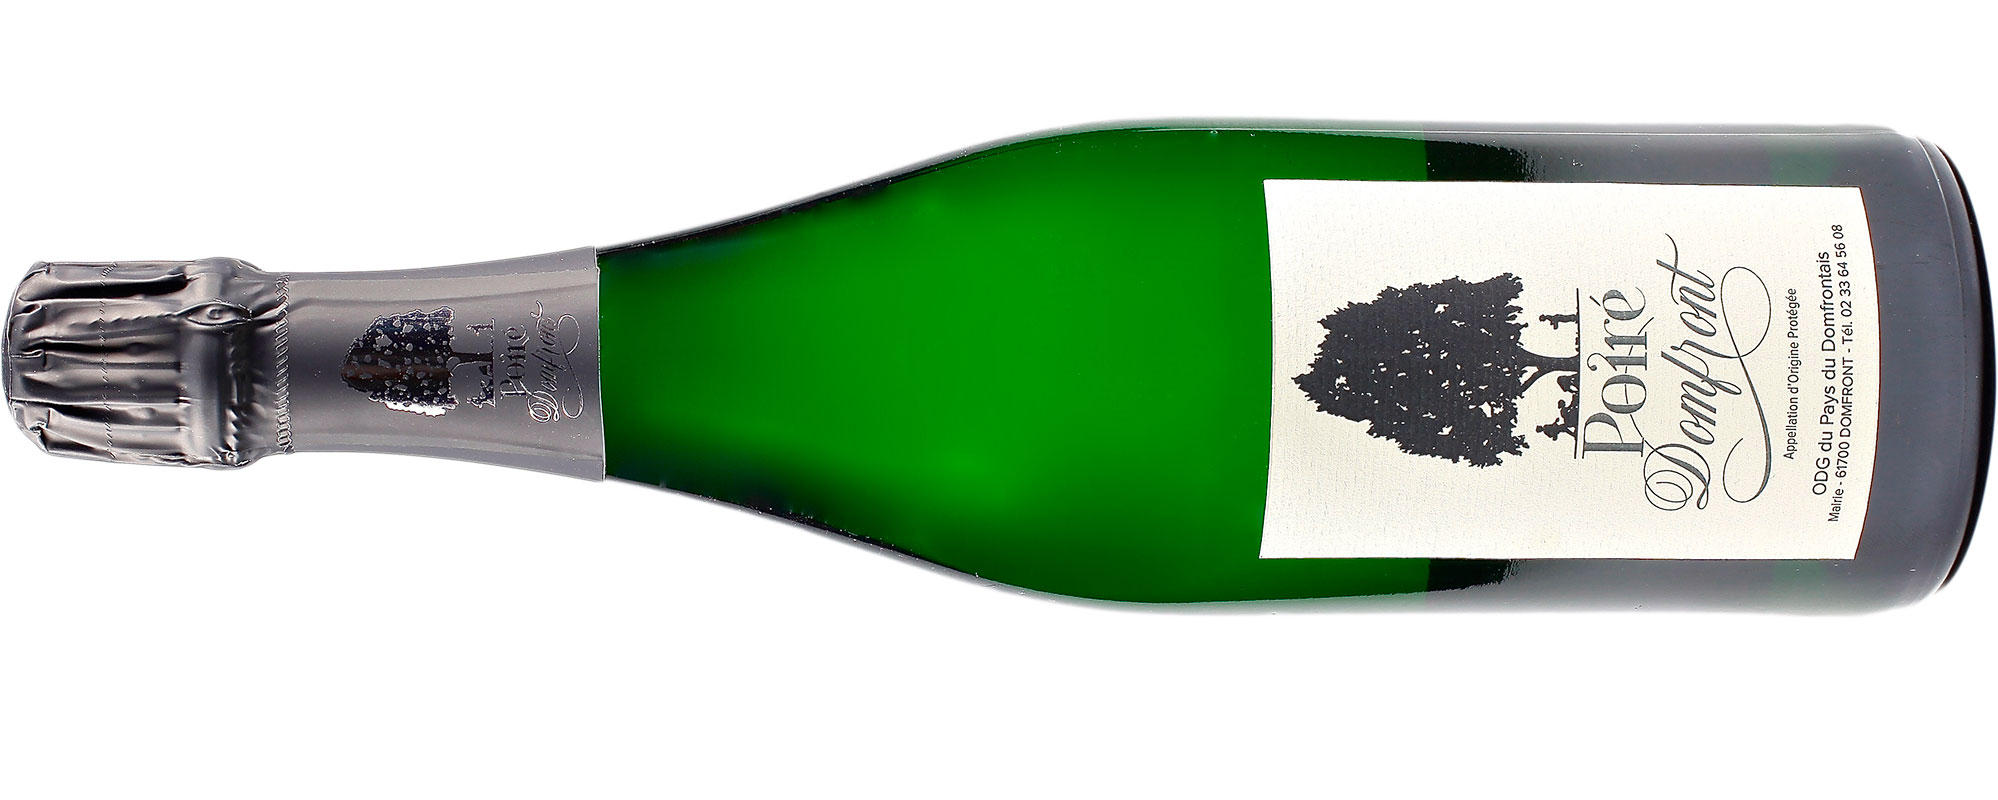 bottle of Poiré Domfront AOP